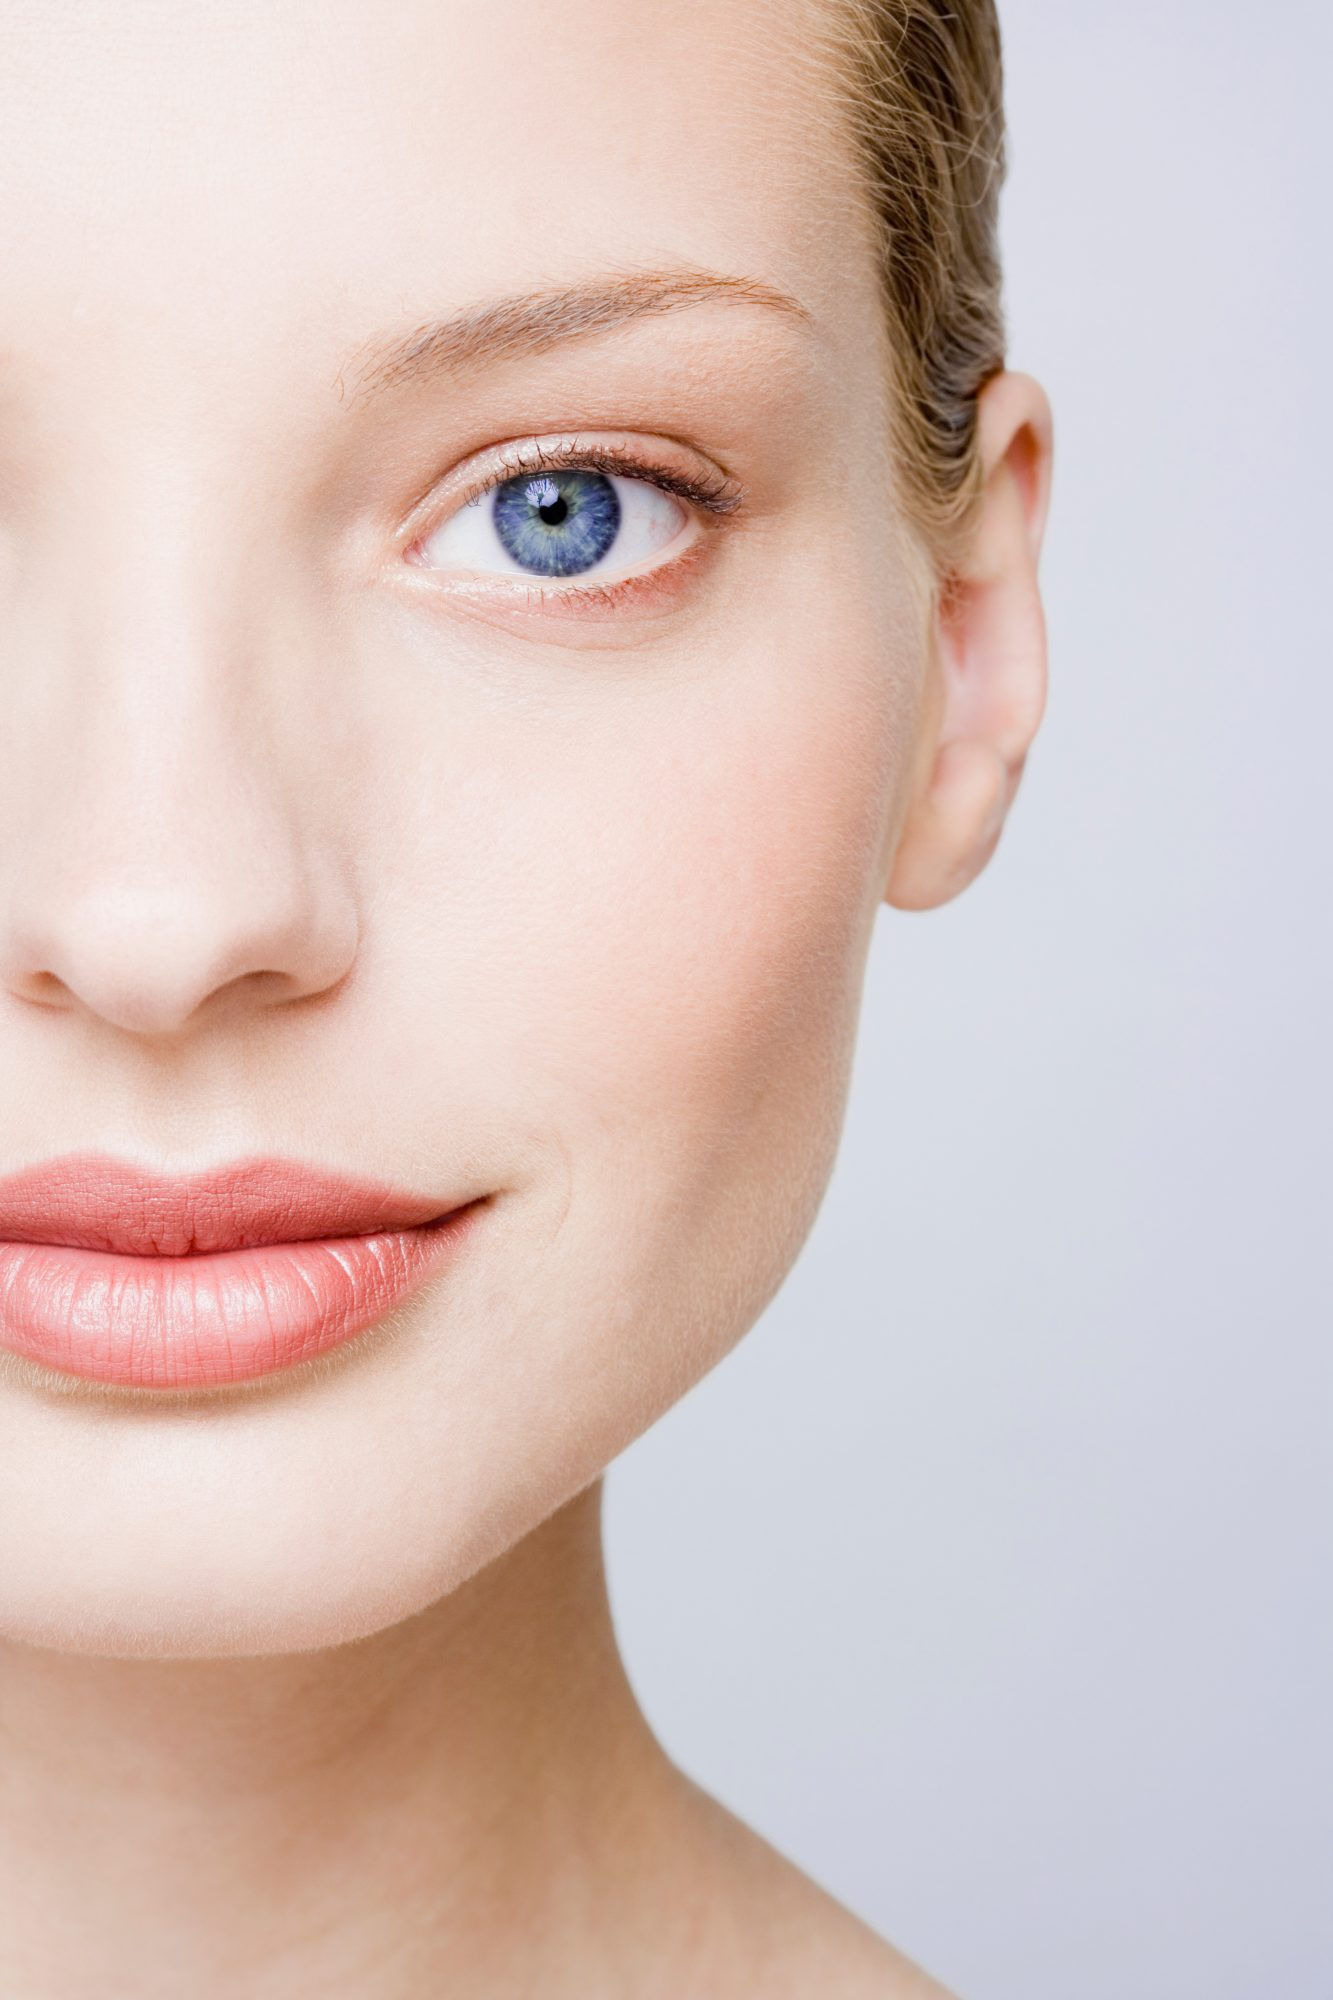 These 5 Foods Are the Best For Glowing Skin